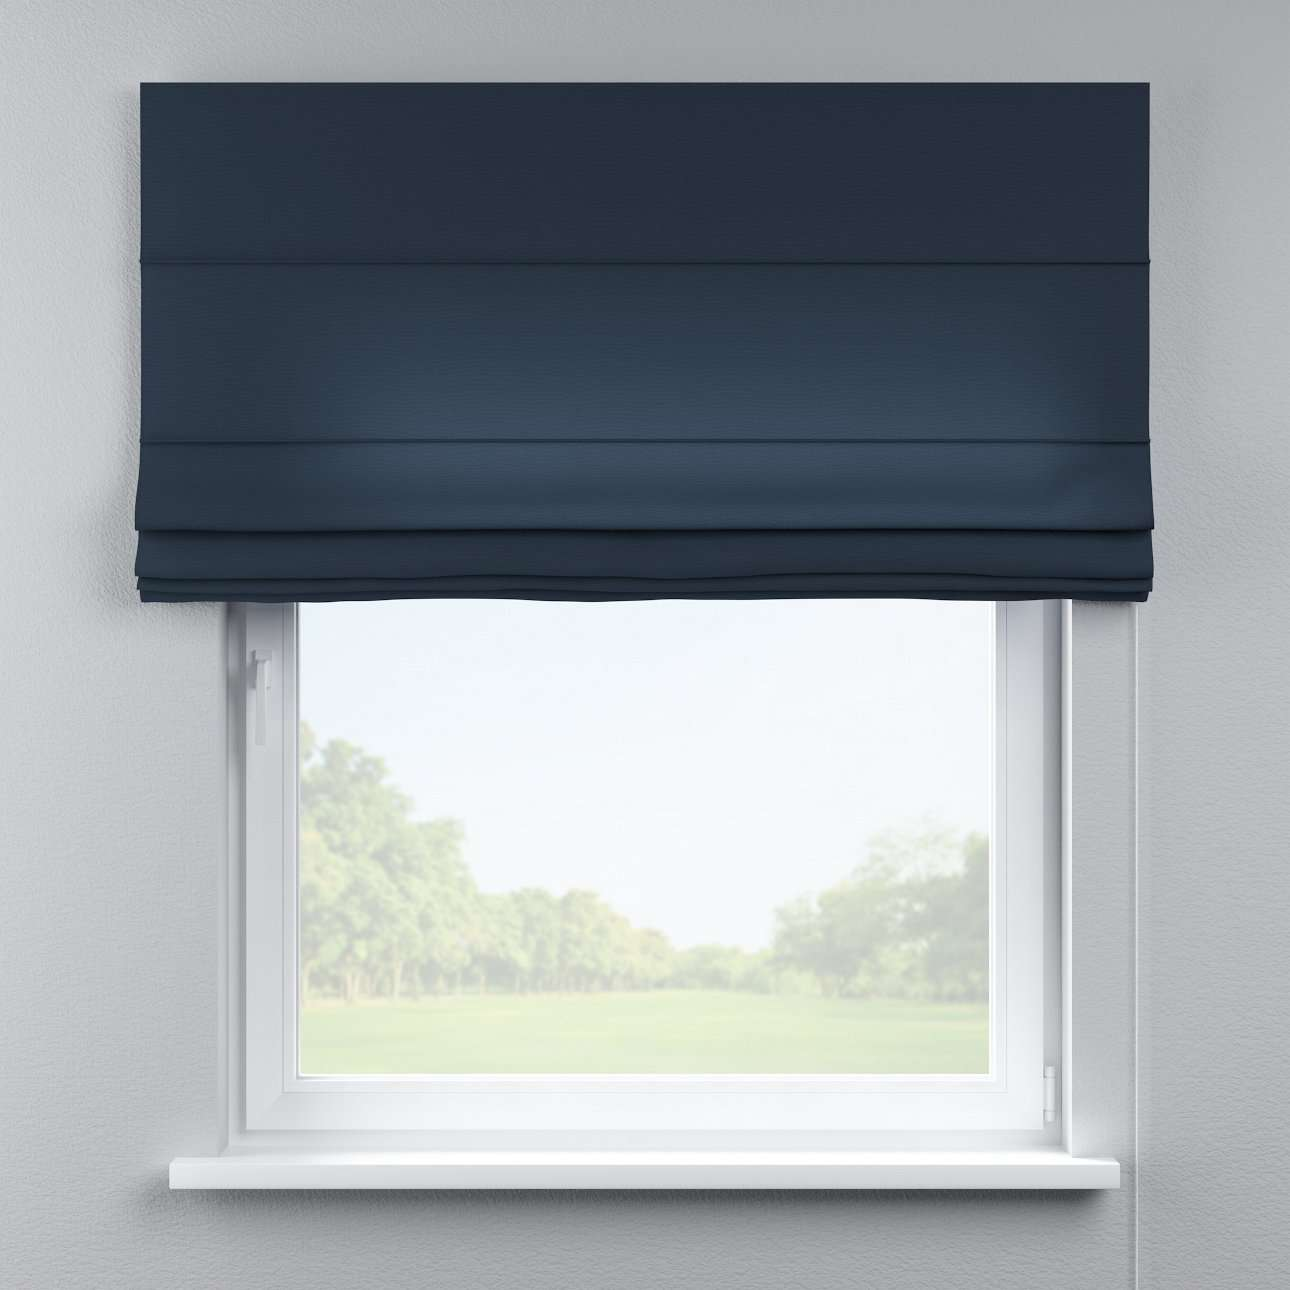 Capri roman blind in collection Quadro, fabric: 136-04